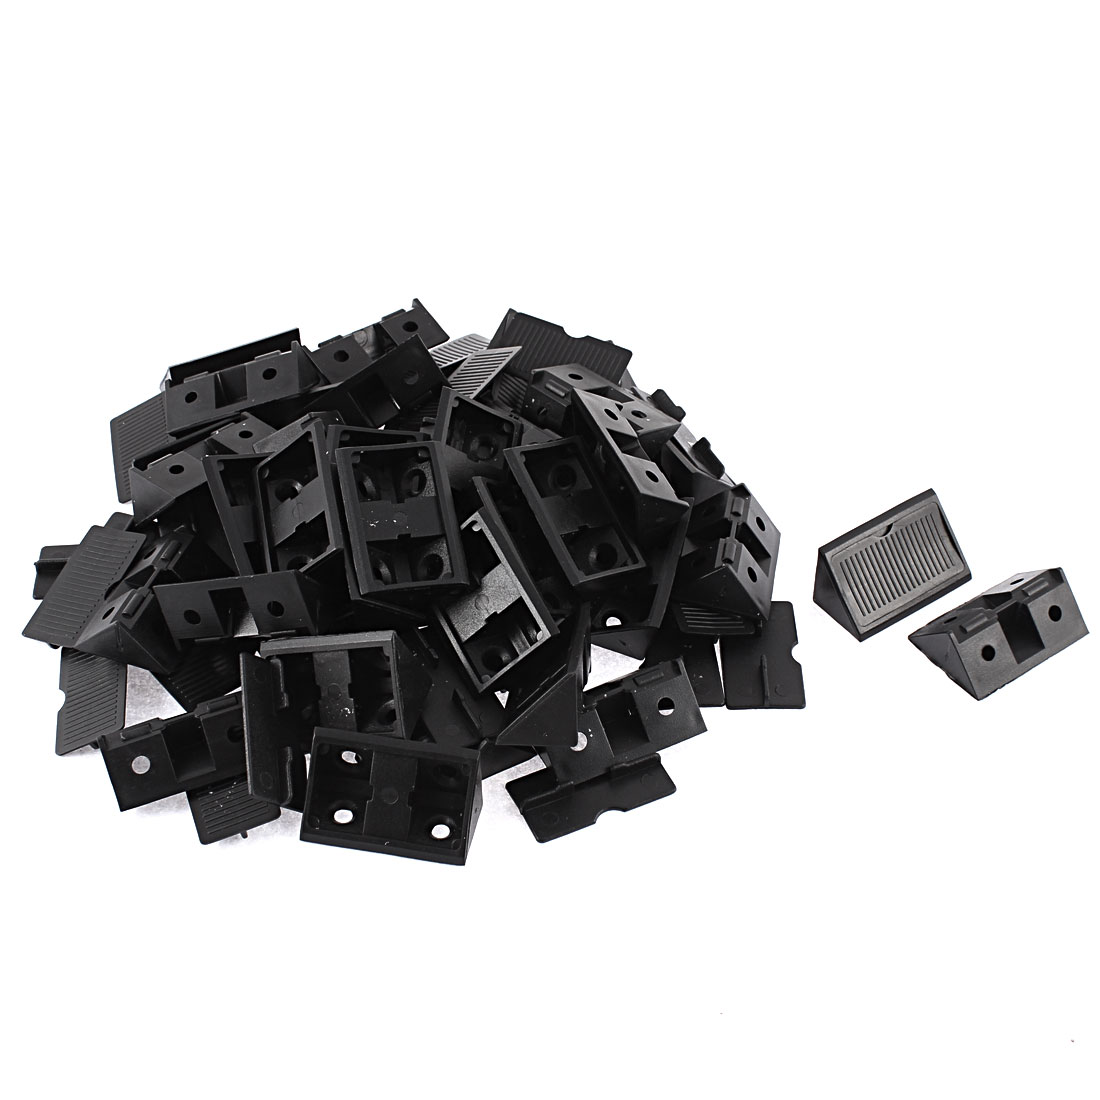 Furniture Shelf Plastic 90 Degree Corner Braces Angle Brackets Black 40pcs